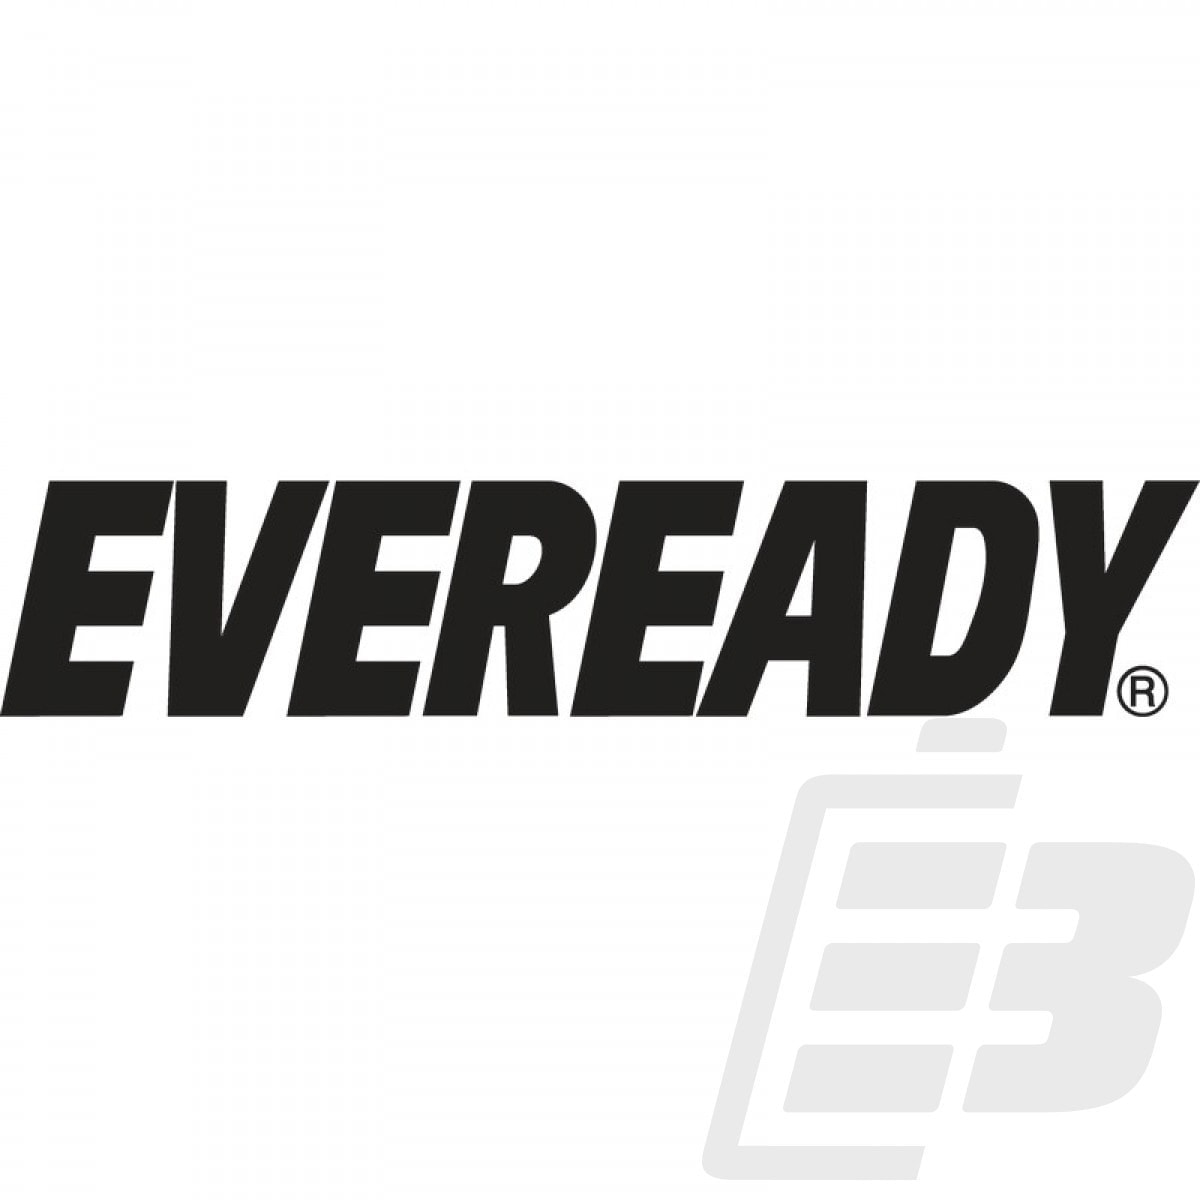 Marketing Mix of Eveready